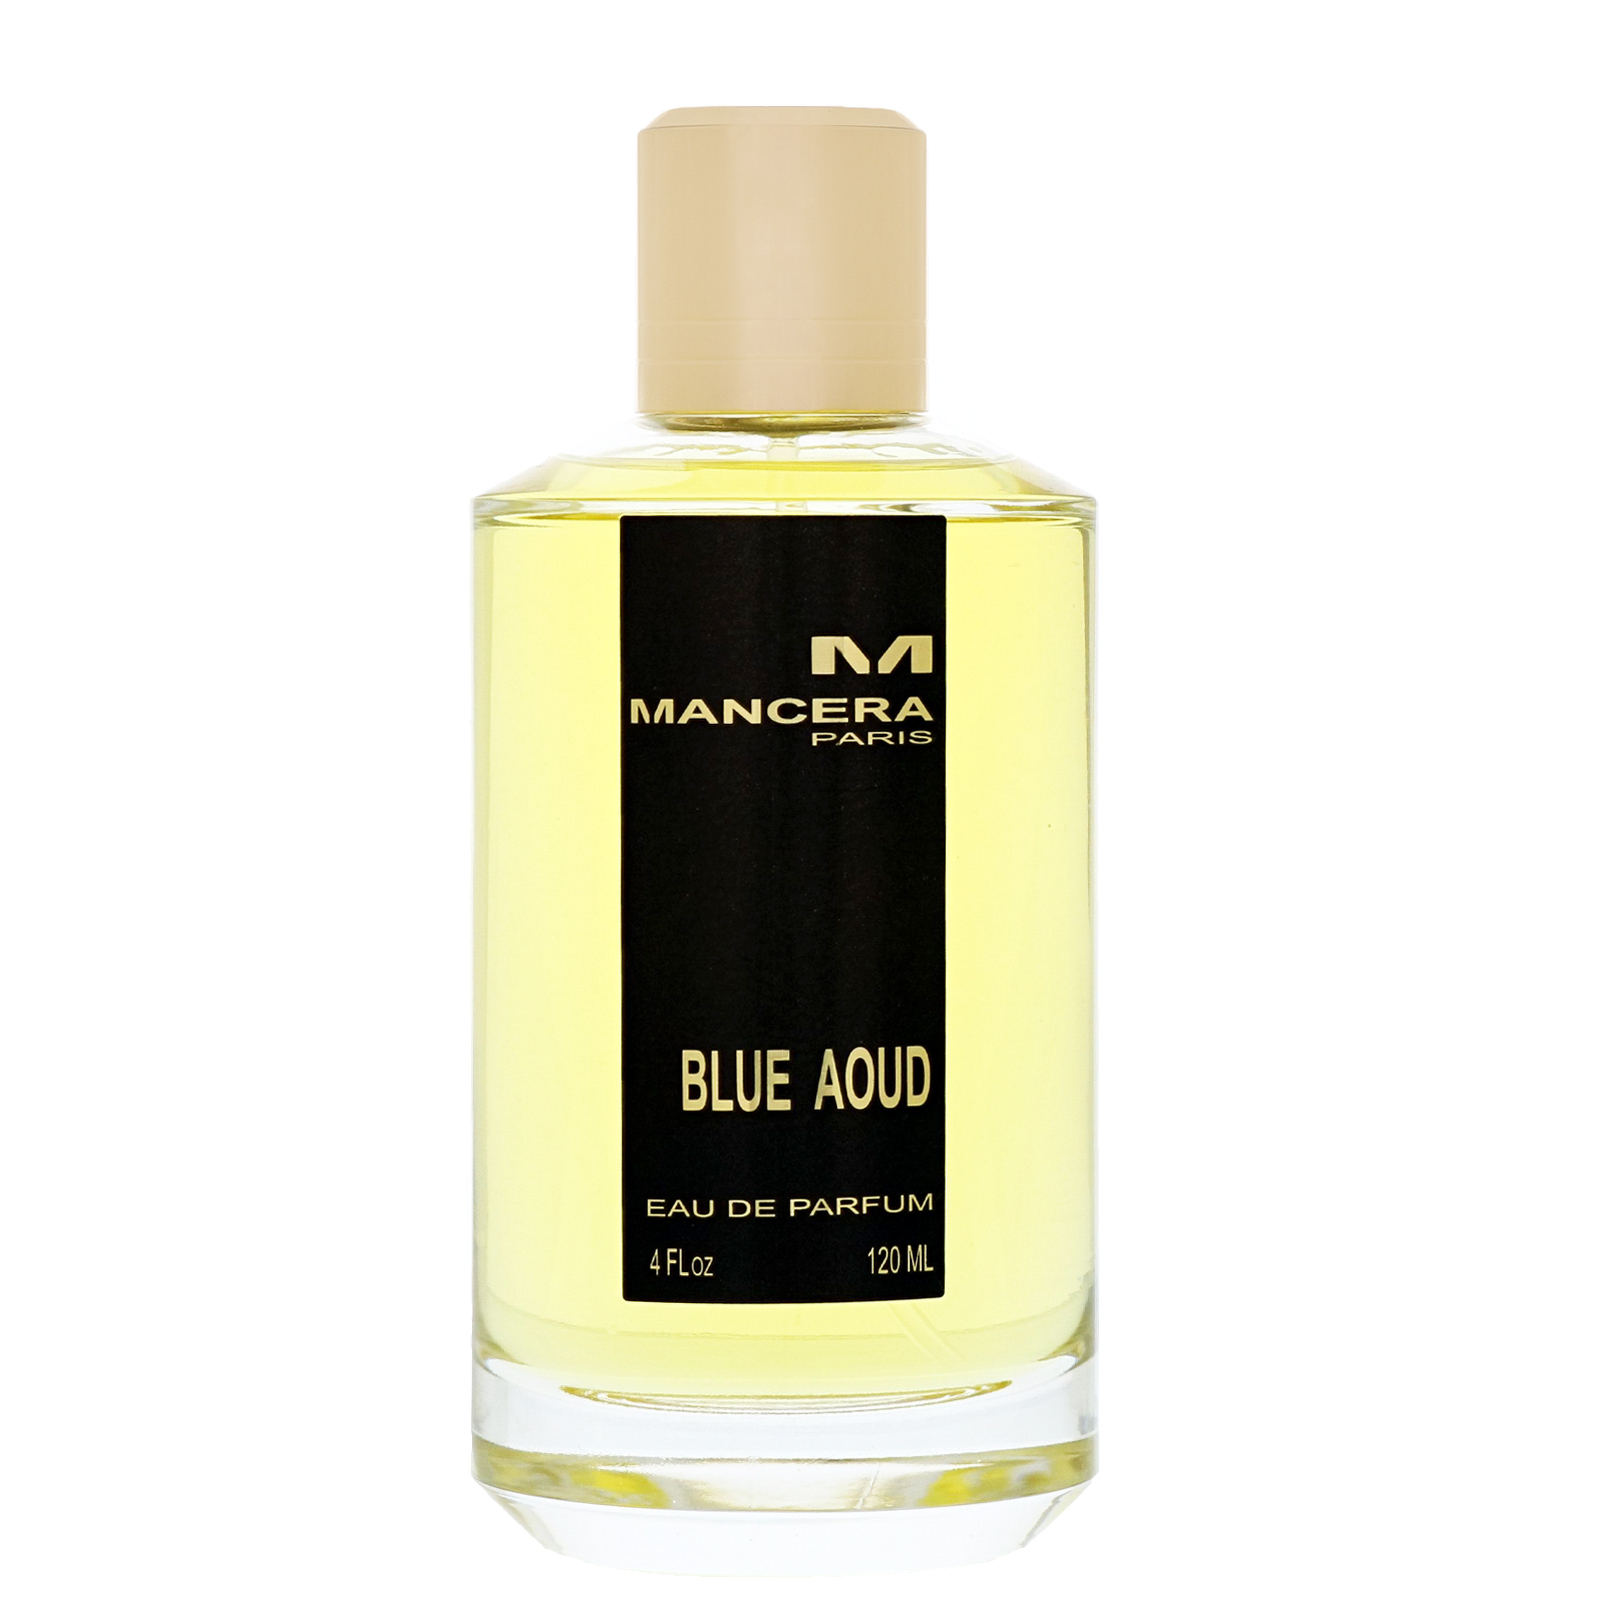 Mancera Paris Blue Aoud Eau de Parfum Spray 120ml